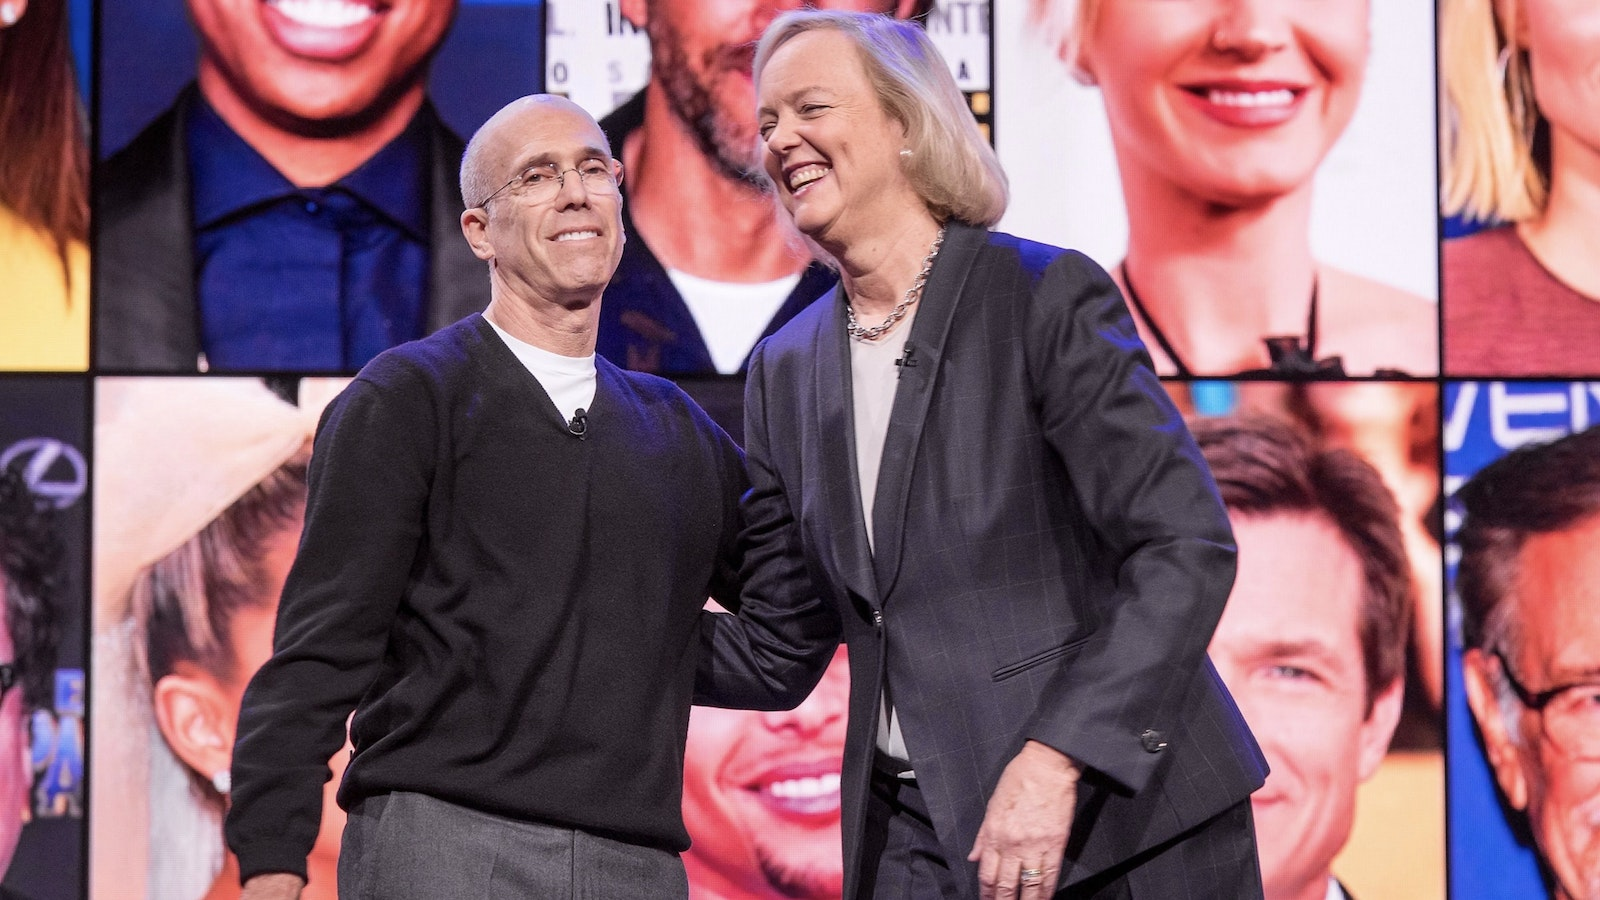 Quibi's Jeffrey Katzenberg and Meg Whitman unveiling the service earlier this year. Photo by Bloomberg.